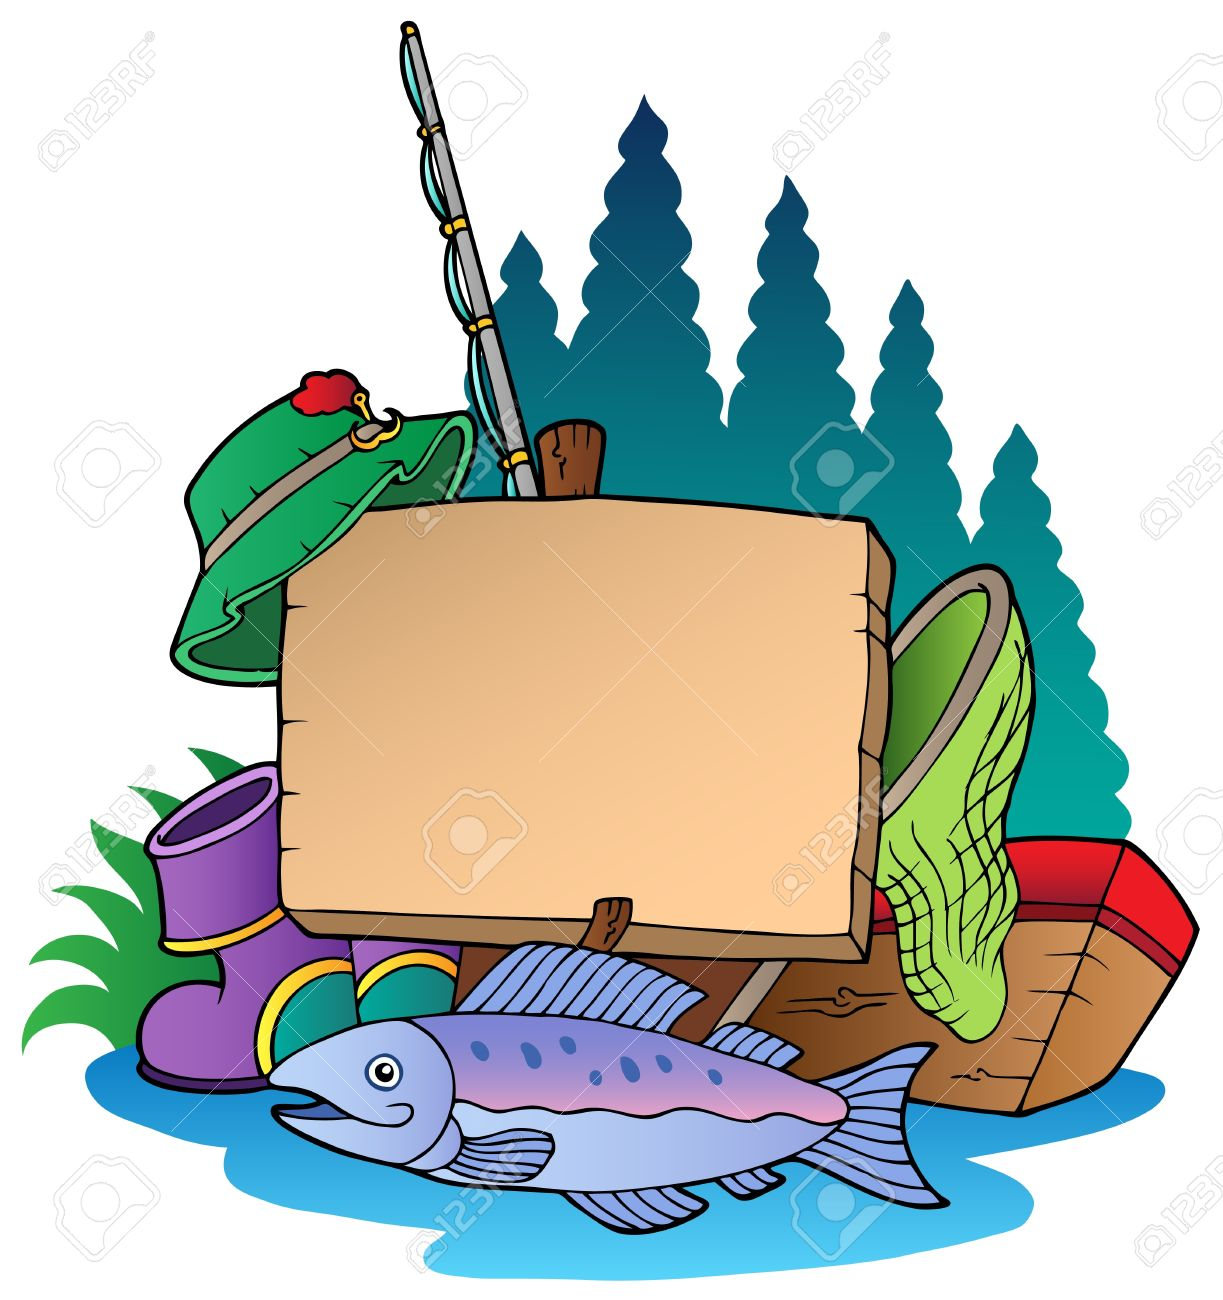 wooden board with fishing equipment illustration. royalty free, Hard Baits